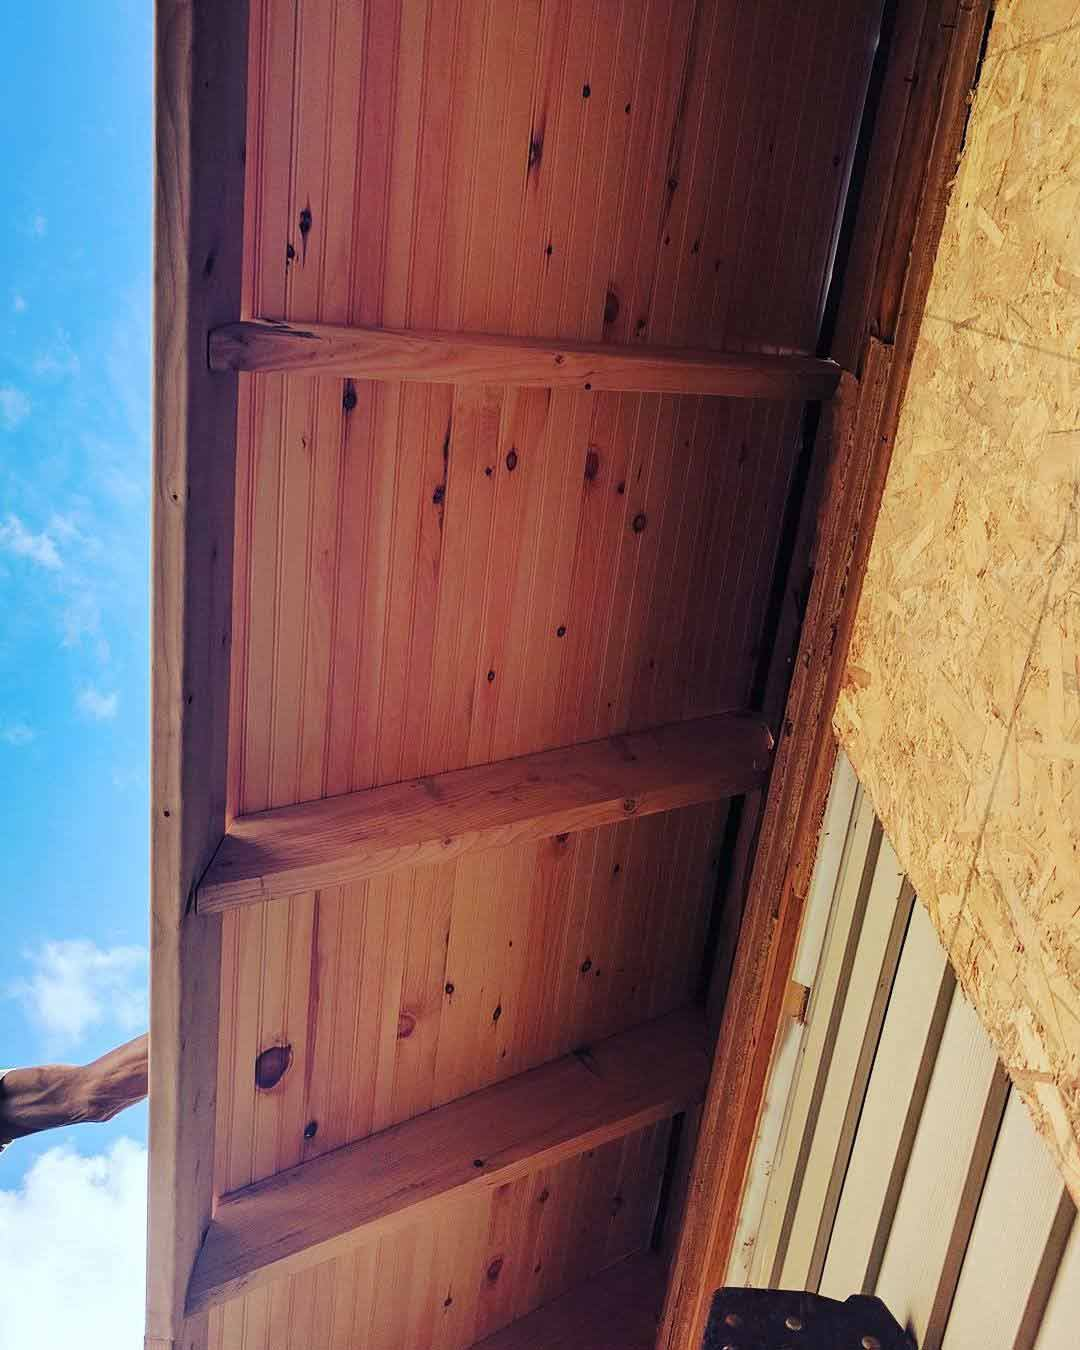 Broad Ripple Craftsman Renovation – The next rafter tails and soffit decking on display for the first time - Modern Craftsman Renovation - Indianapolis, IN